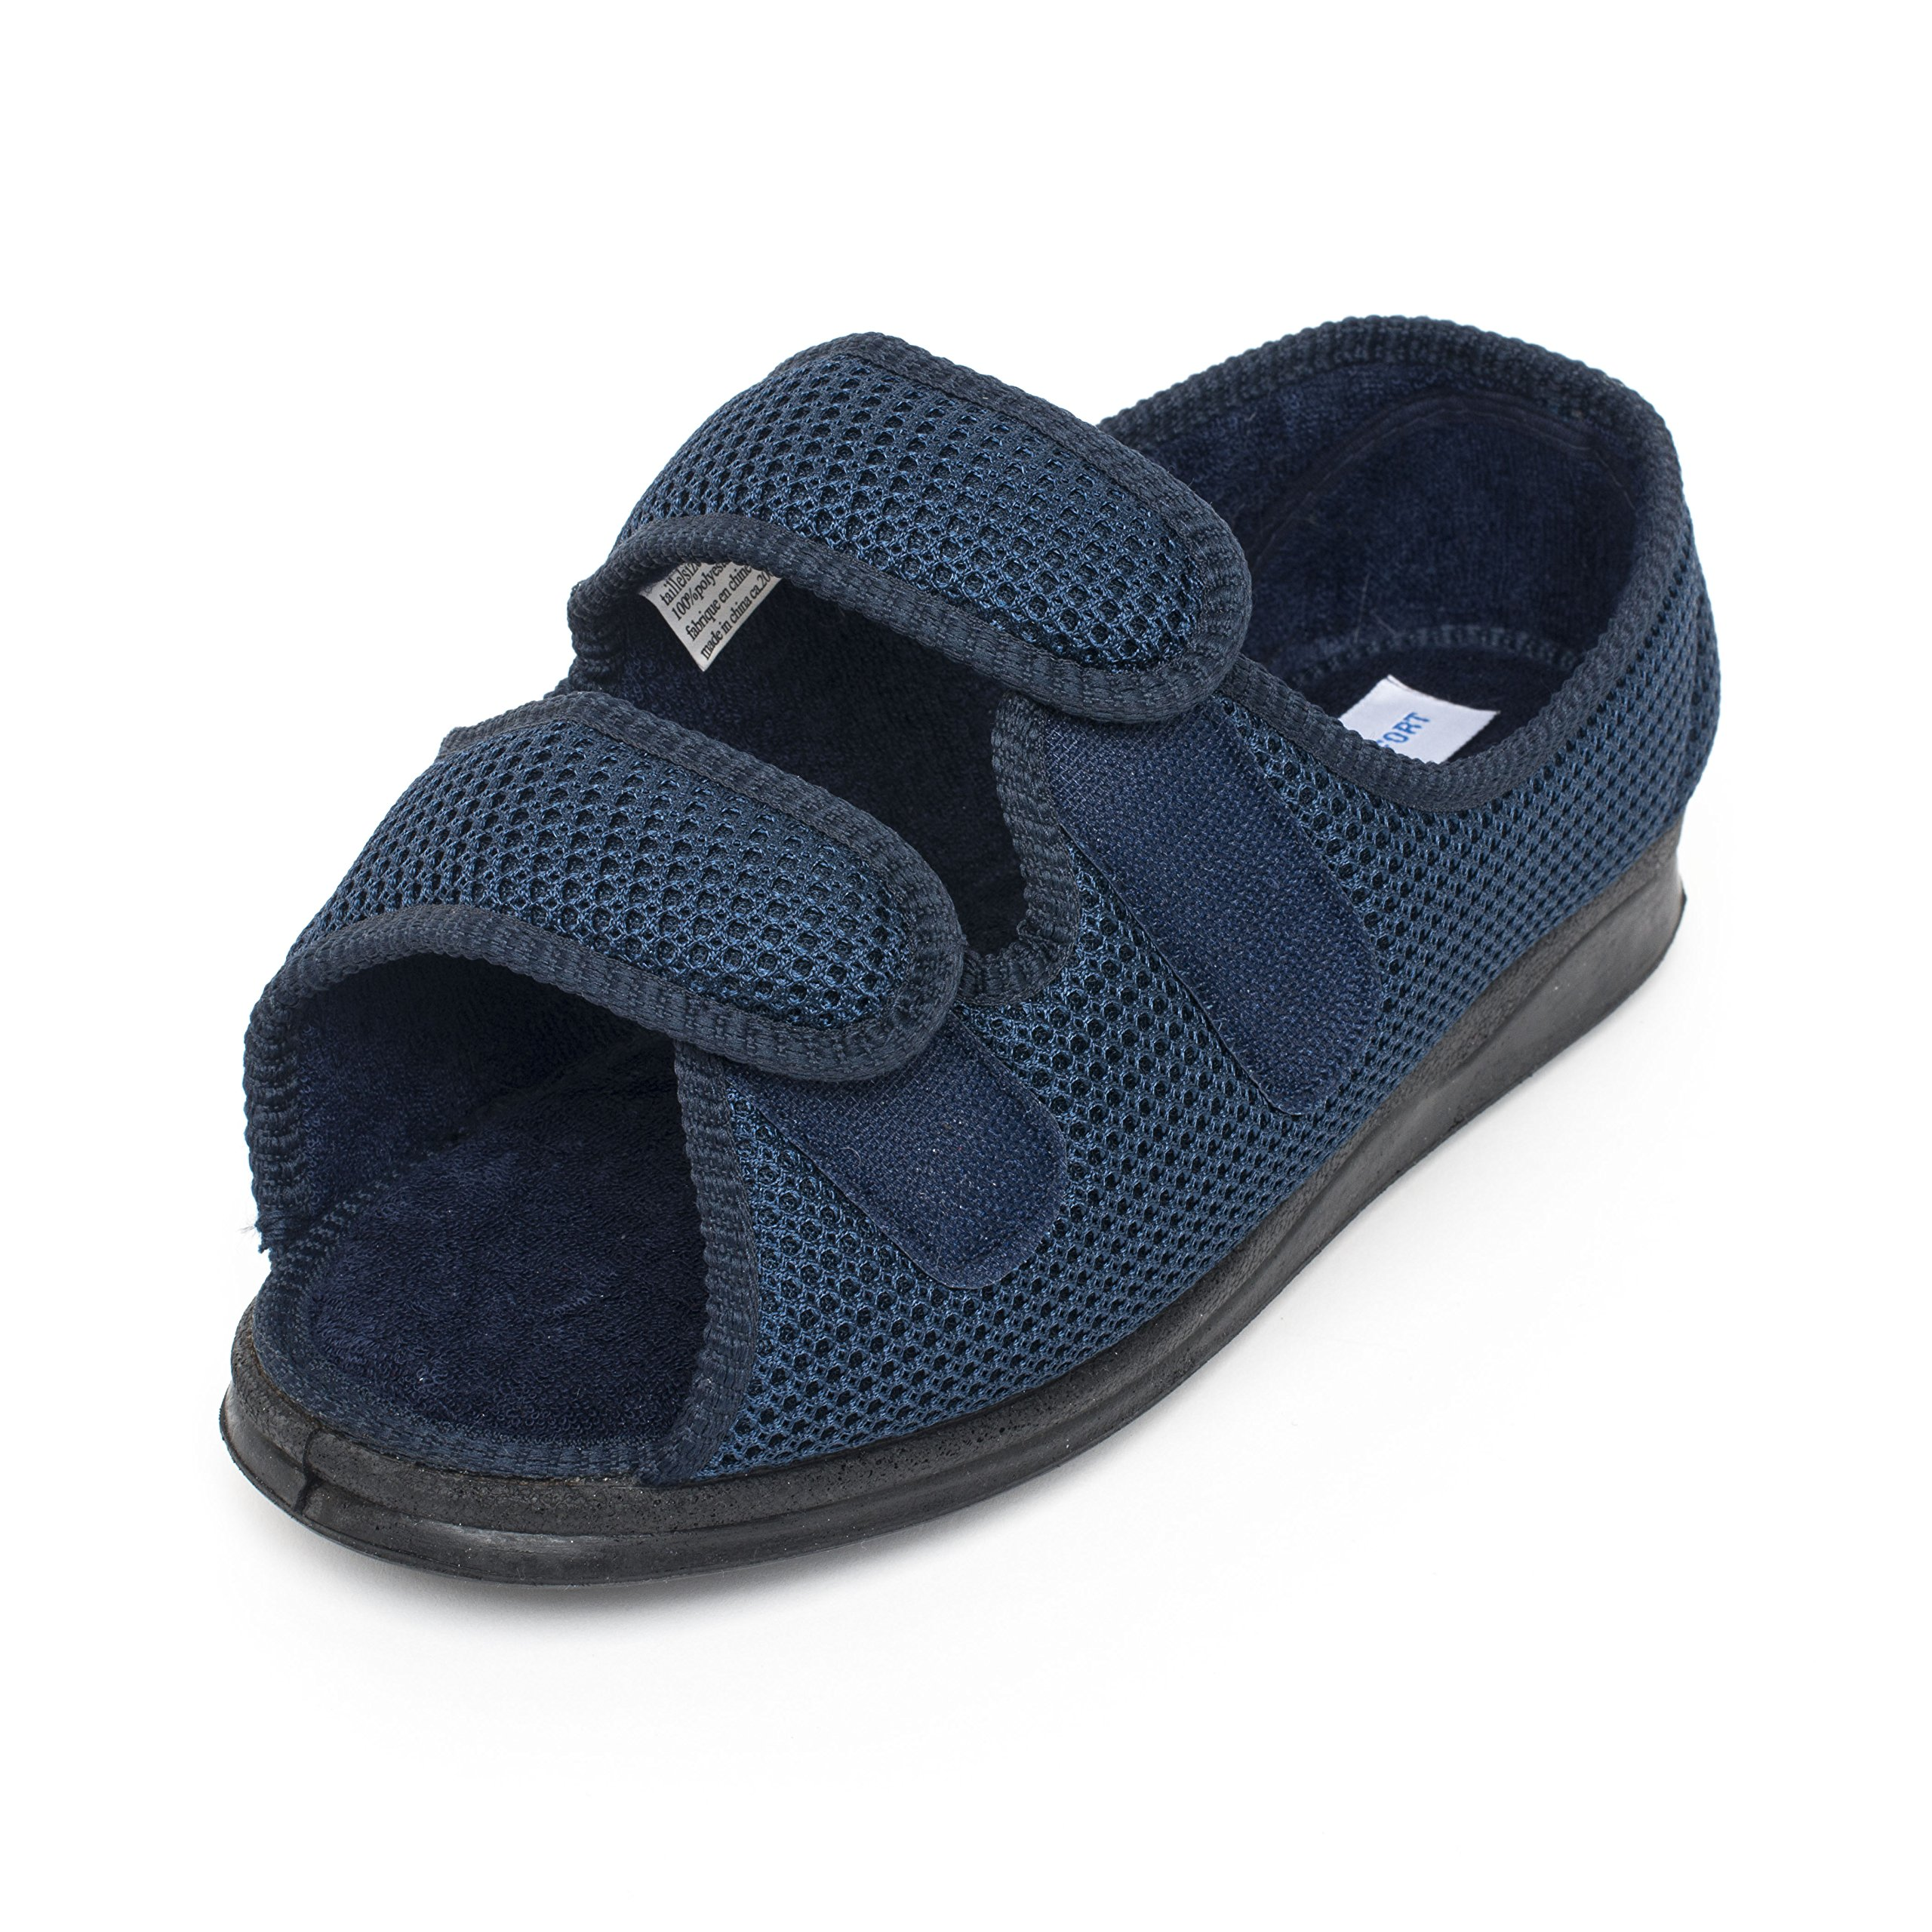 Creation Comfort Comfortable Sandals/Shoes Women and Men's Extra Wide Velcro Antimicrobial Adjustable Machine Washable (9) by Creation Comfort (Image #5)